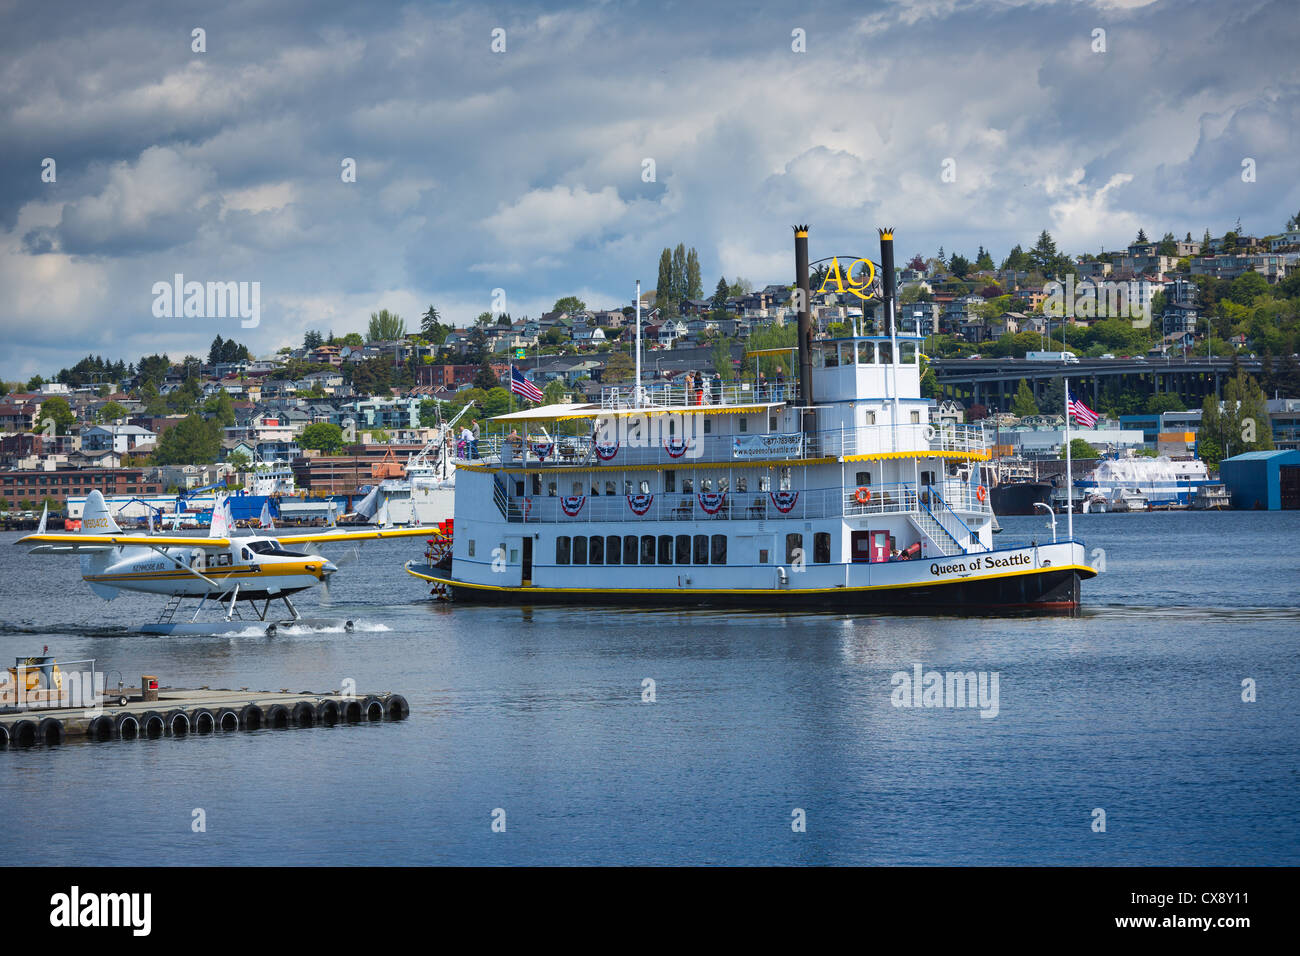 Tour boat on Seattle's Lake Union, with seaplane next to it - Stock Image